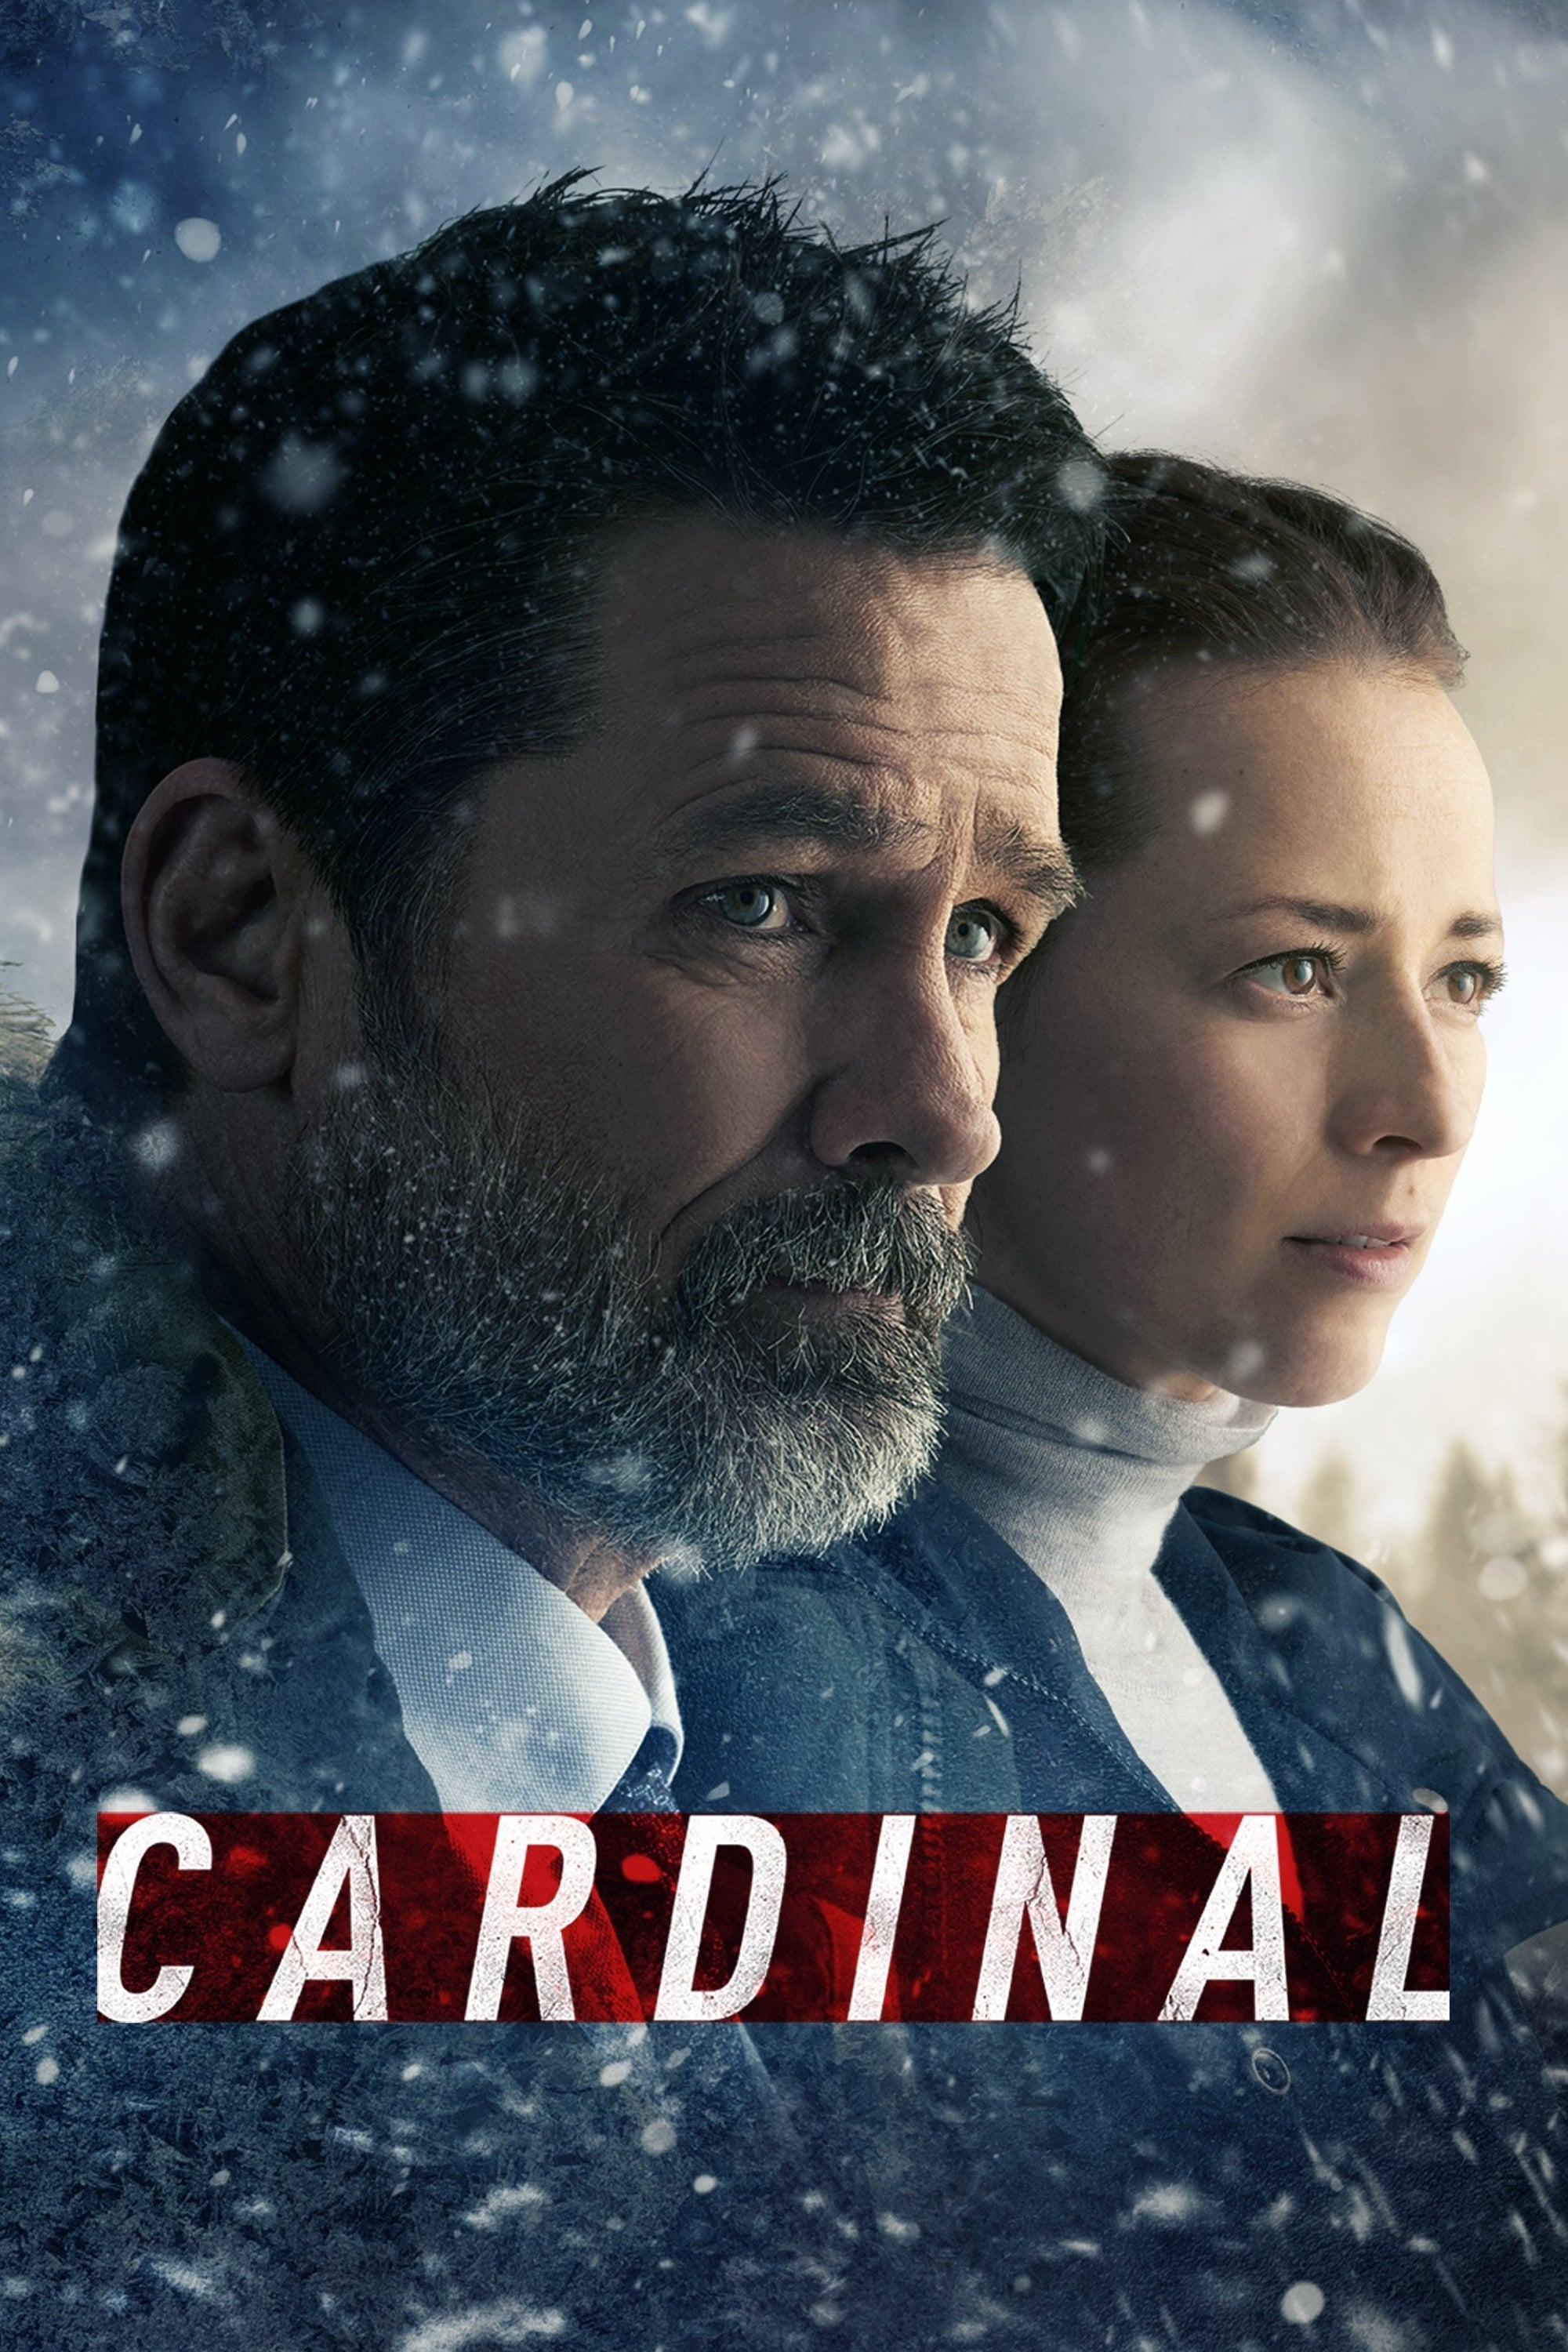 Cardinal TV Shows About Police Detective